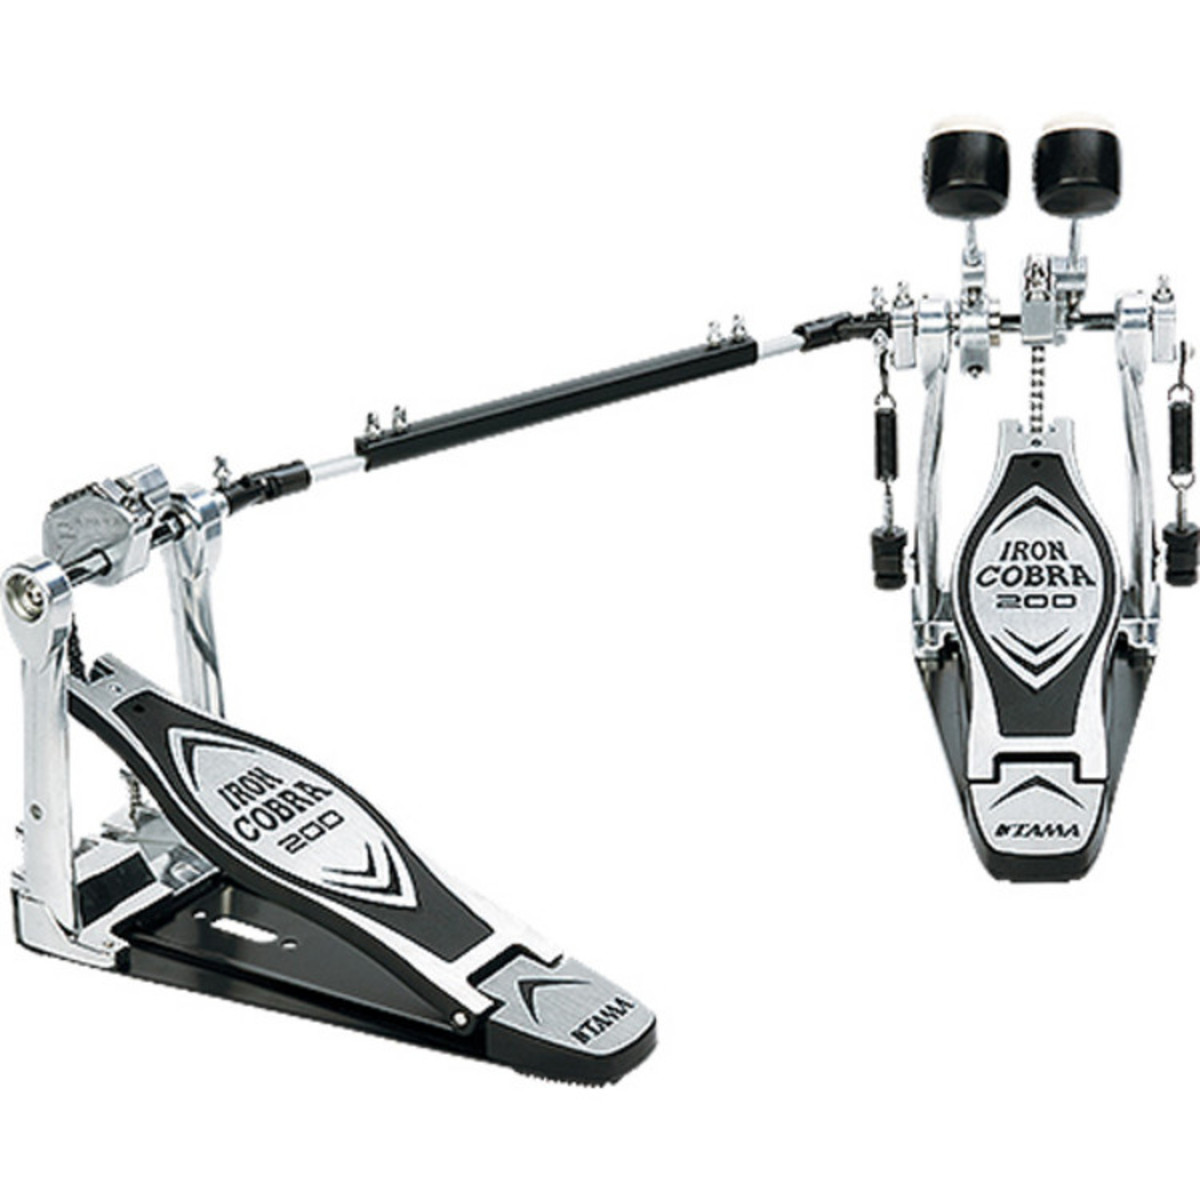 tama hp200ptw iron cobra 200 series double drum pedal at. Black Bedroom Furniture Sets. Home Design Ideas